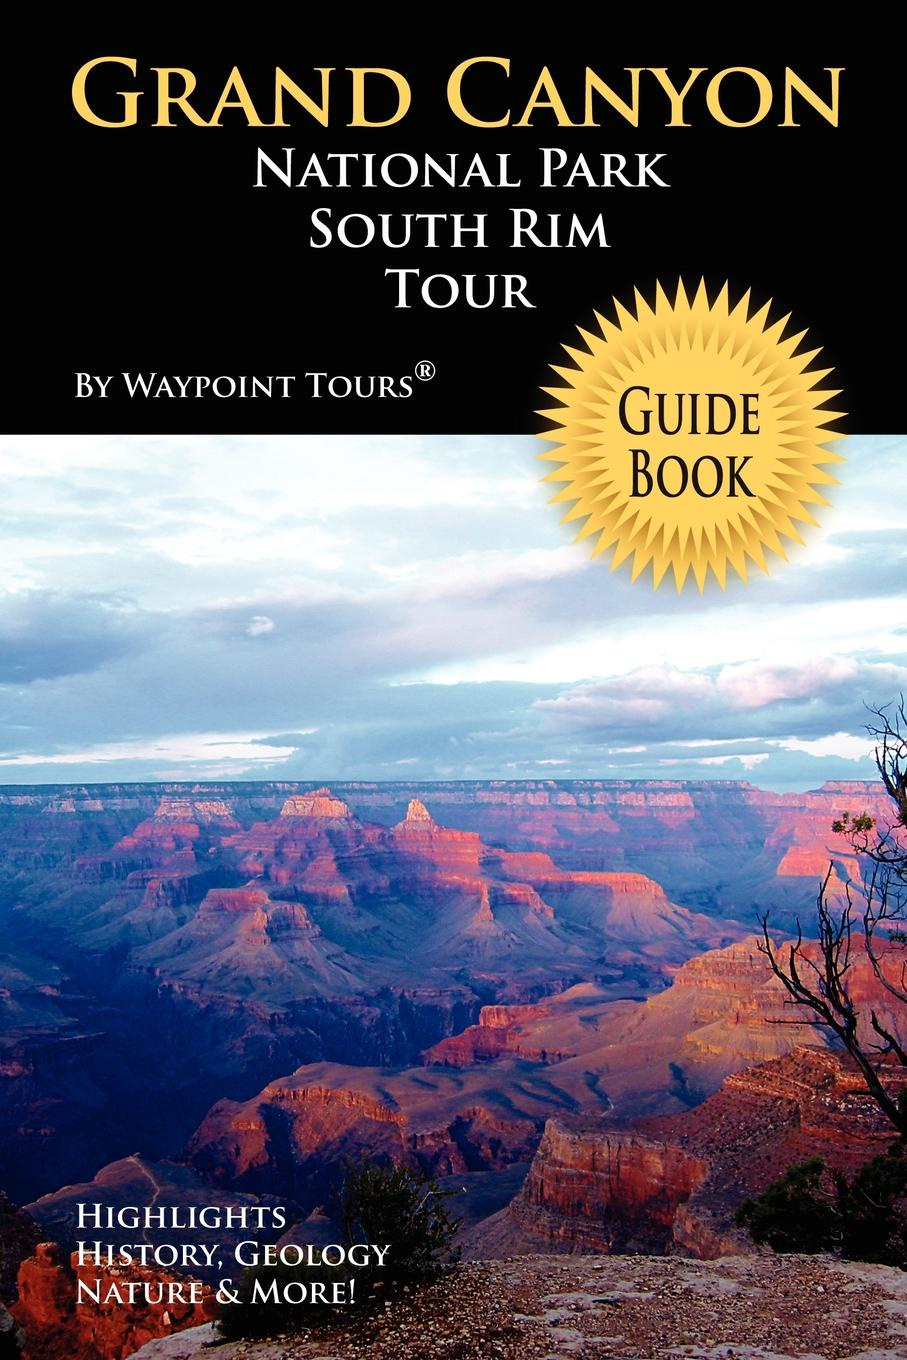 Waypoint Tours Grand Canyon National Park South Rim Tour Guide Book 12storeez шуба укороченная из мутона коричневая